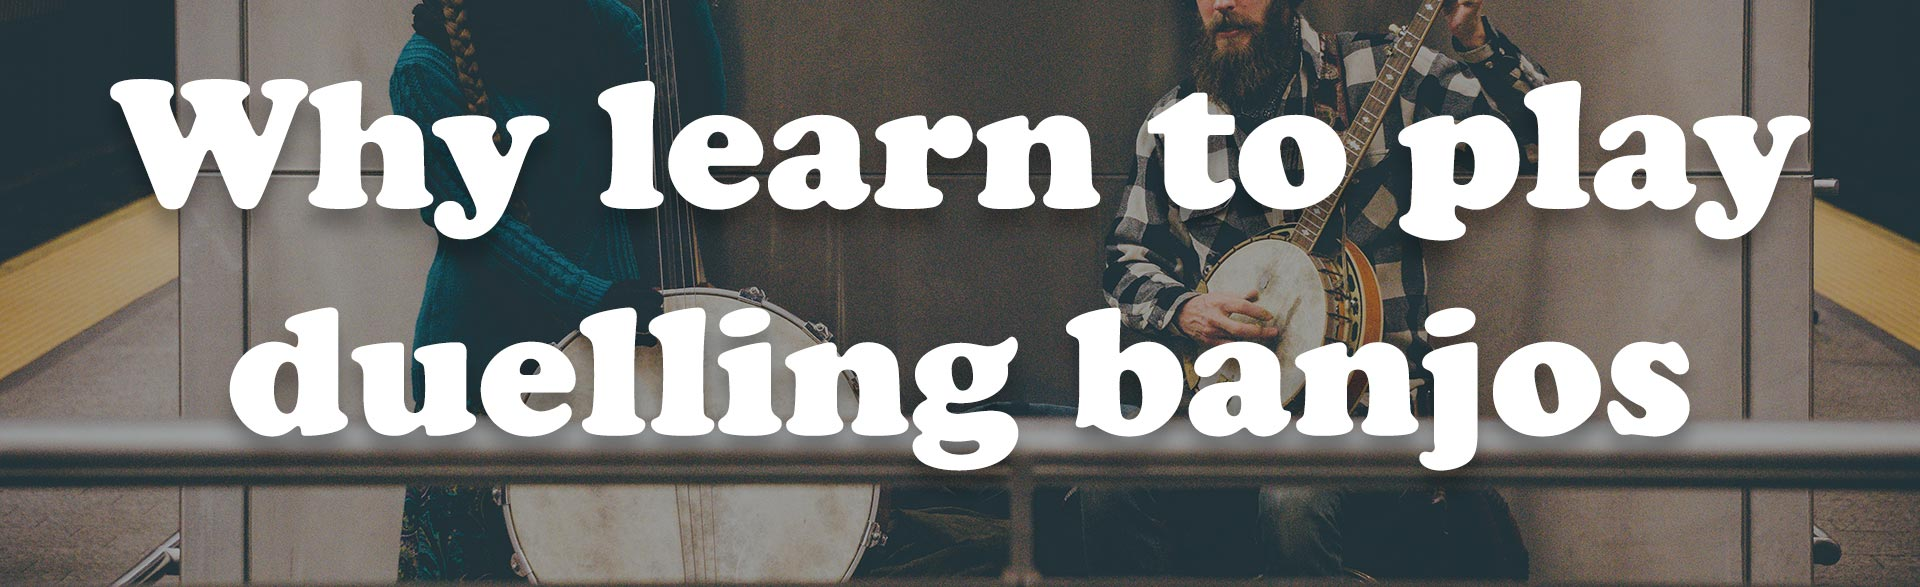 Post Thumbnail for the Post: Why learn to play duelling banjos Viewable at https://jofflowson.com/why-learn-duelling-banjos